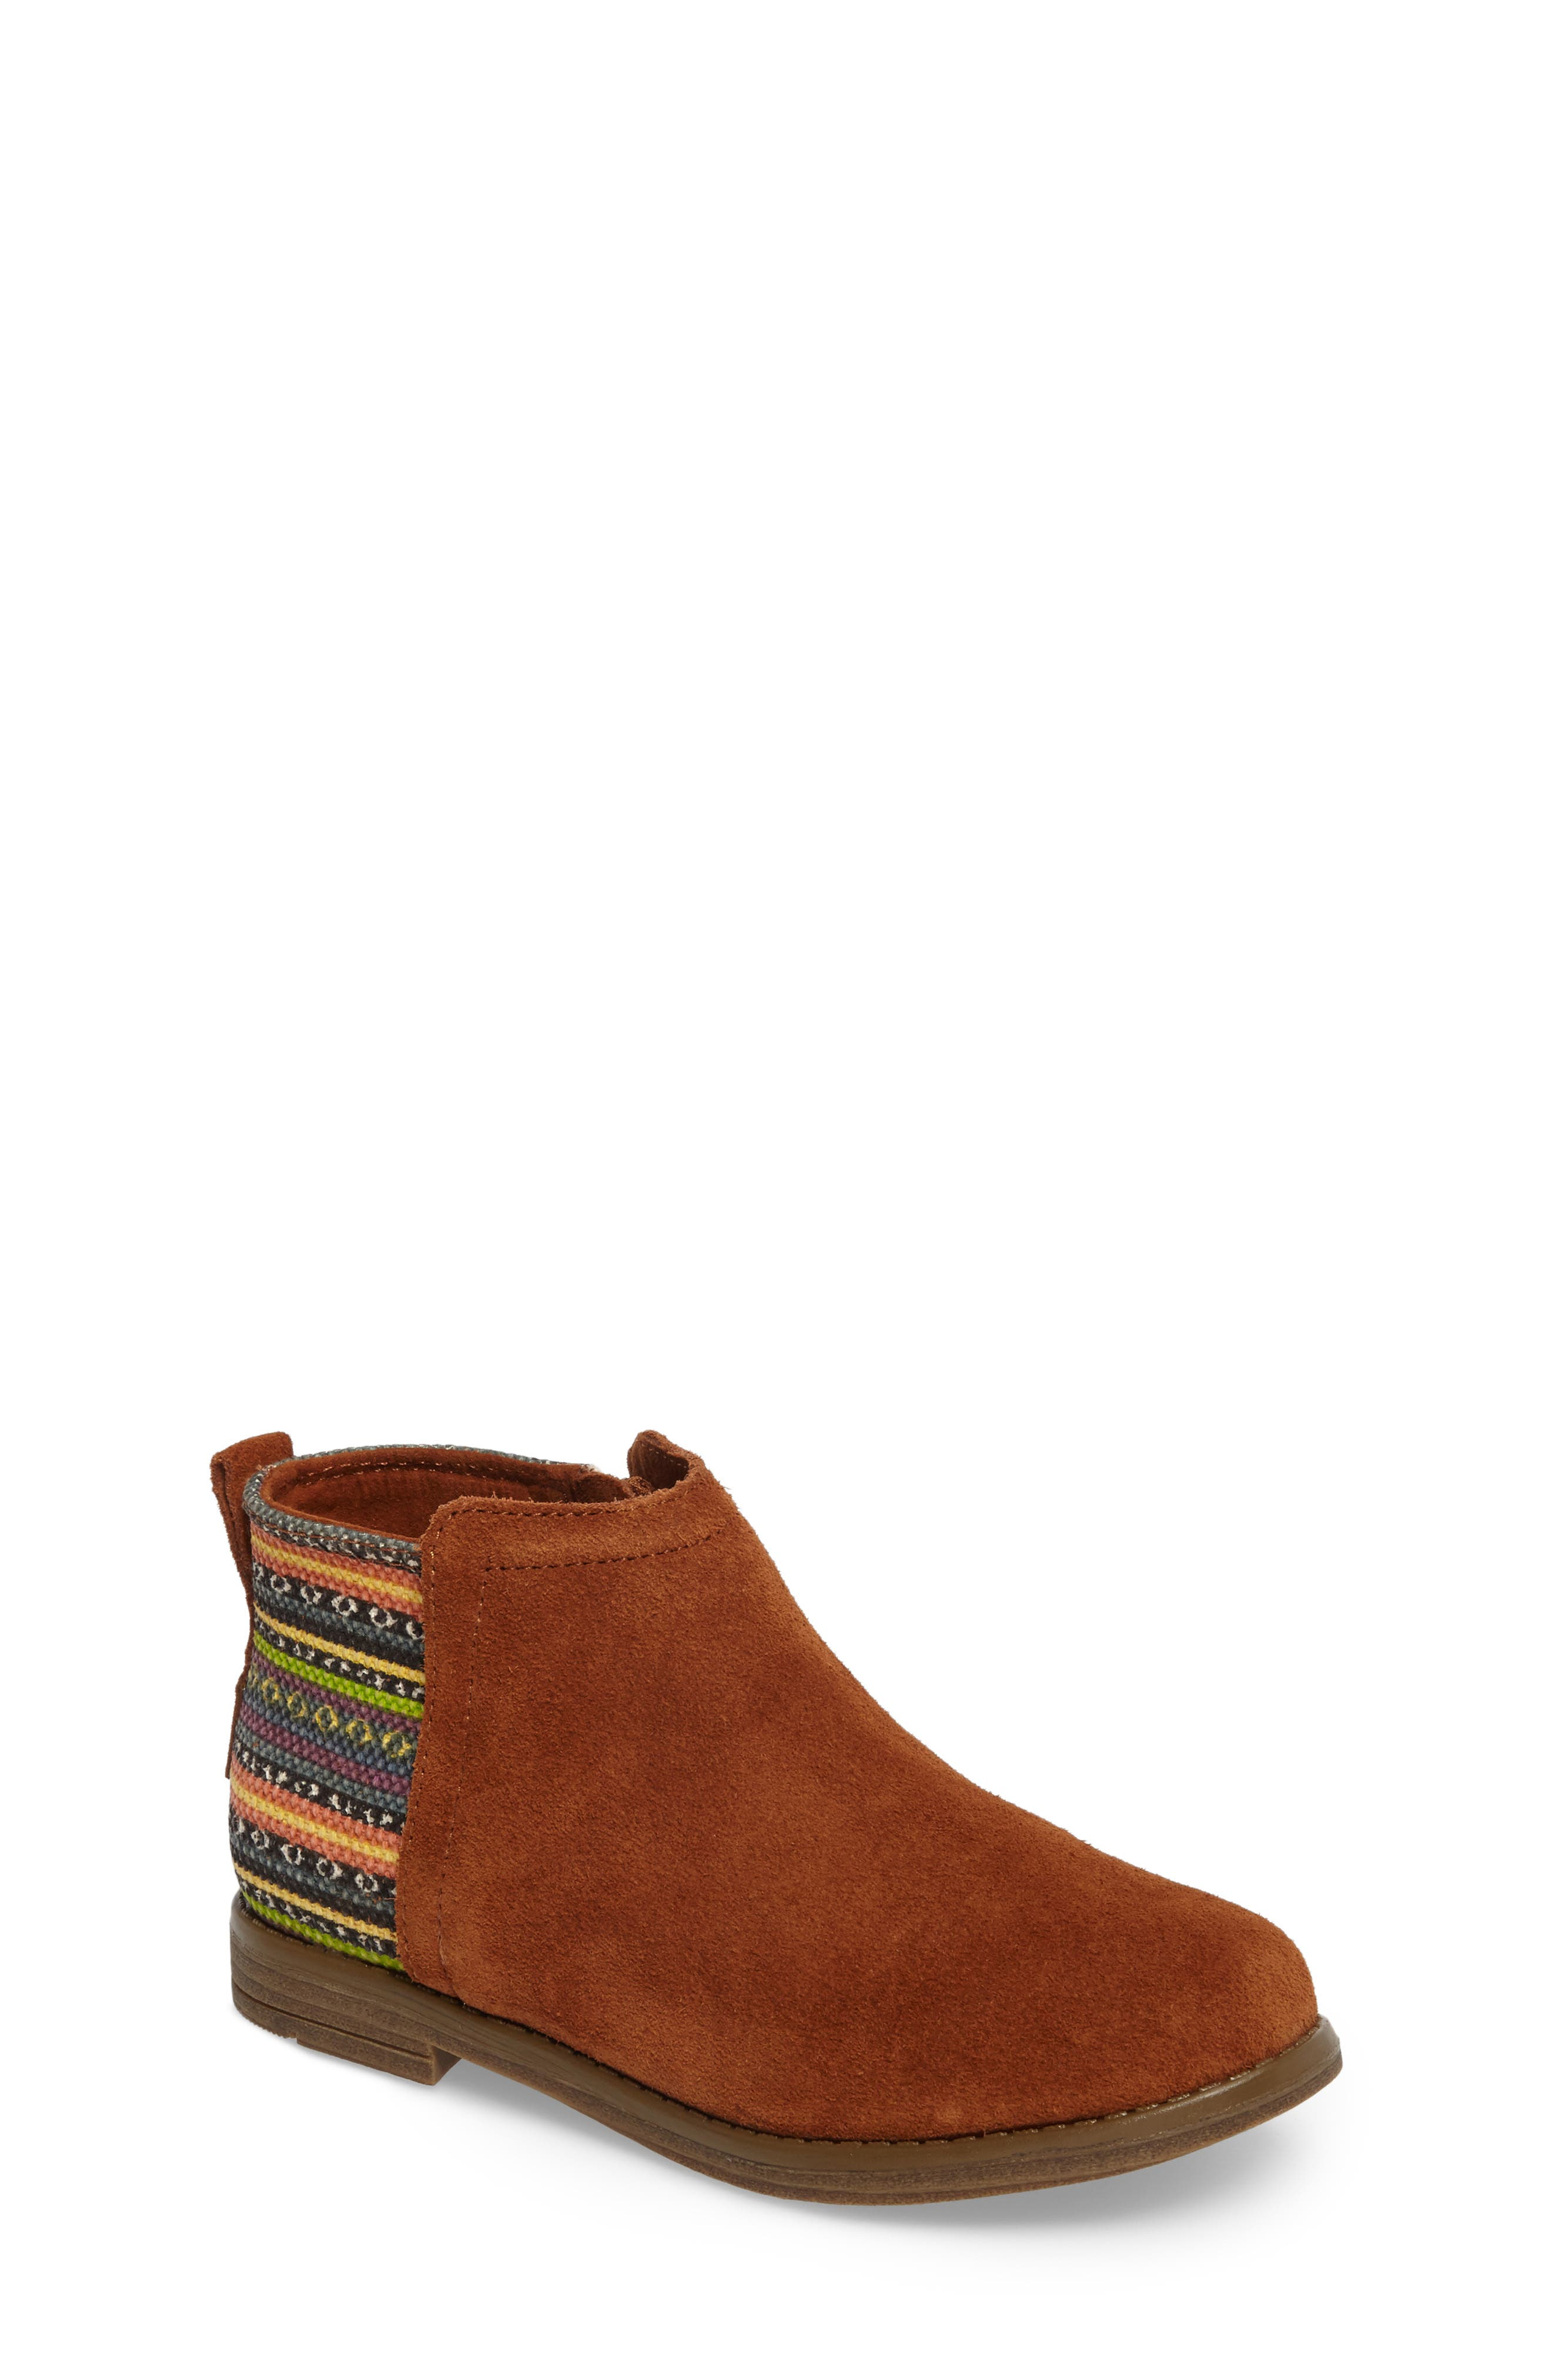 Deia Mixed Media Bootie,                         Main,                         color, Cinnamon Suede